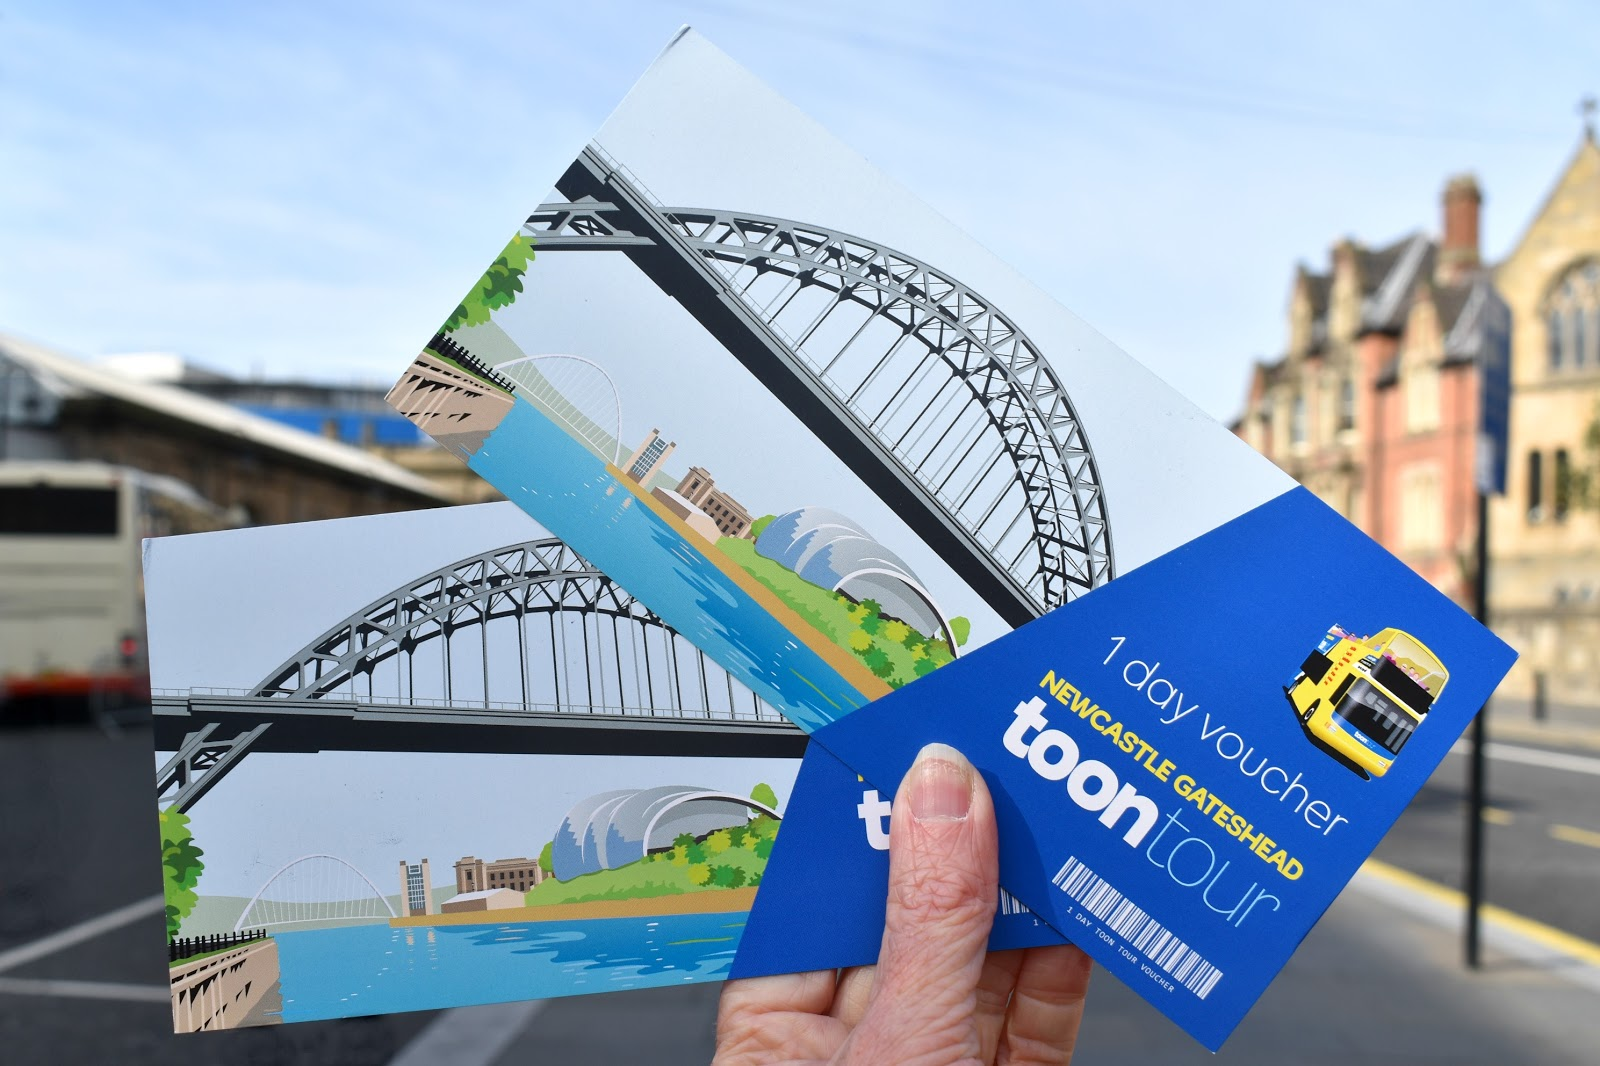 Toon Tour - Exploring Newcastle and Gateshead on the Hop-on Hop-off Open Top Bus Tour